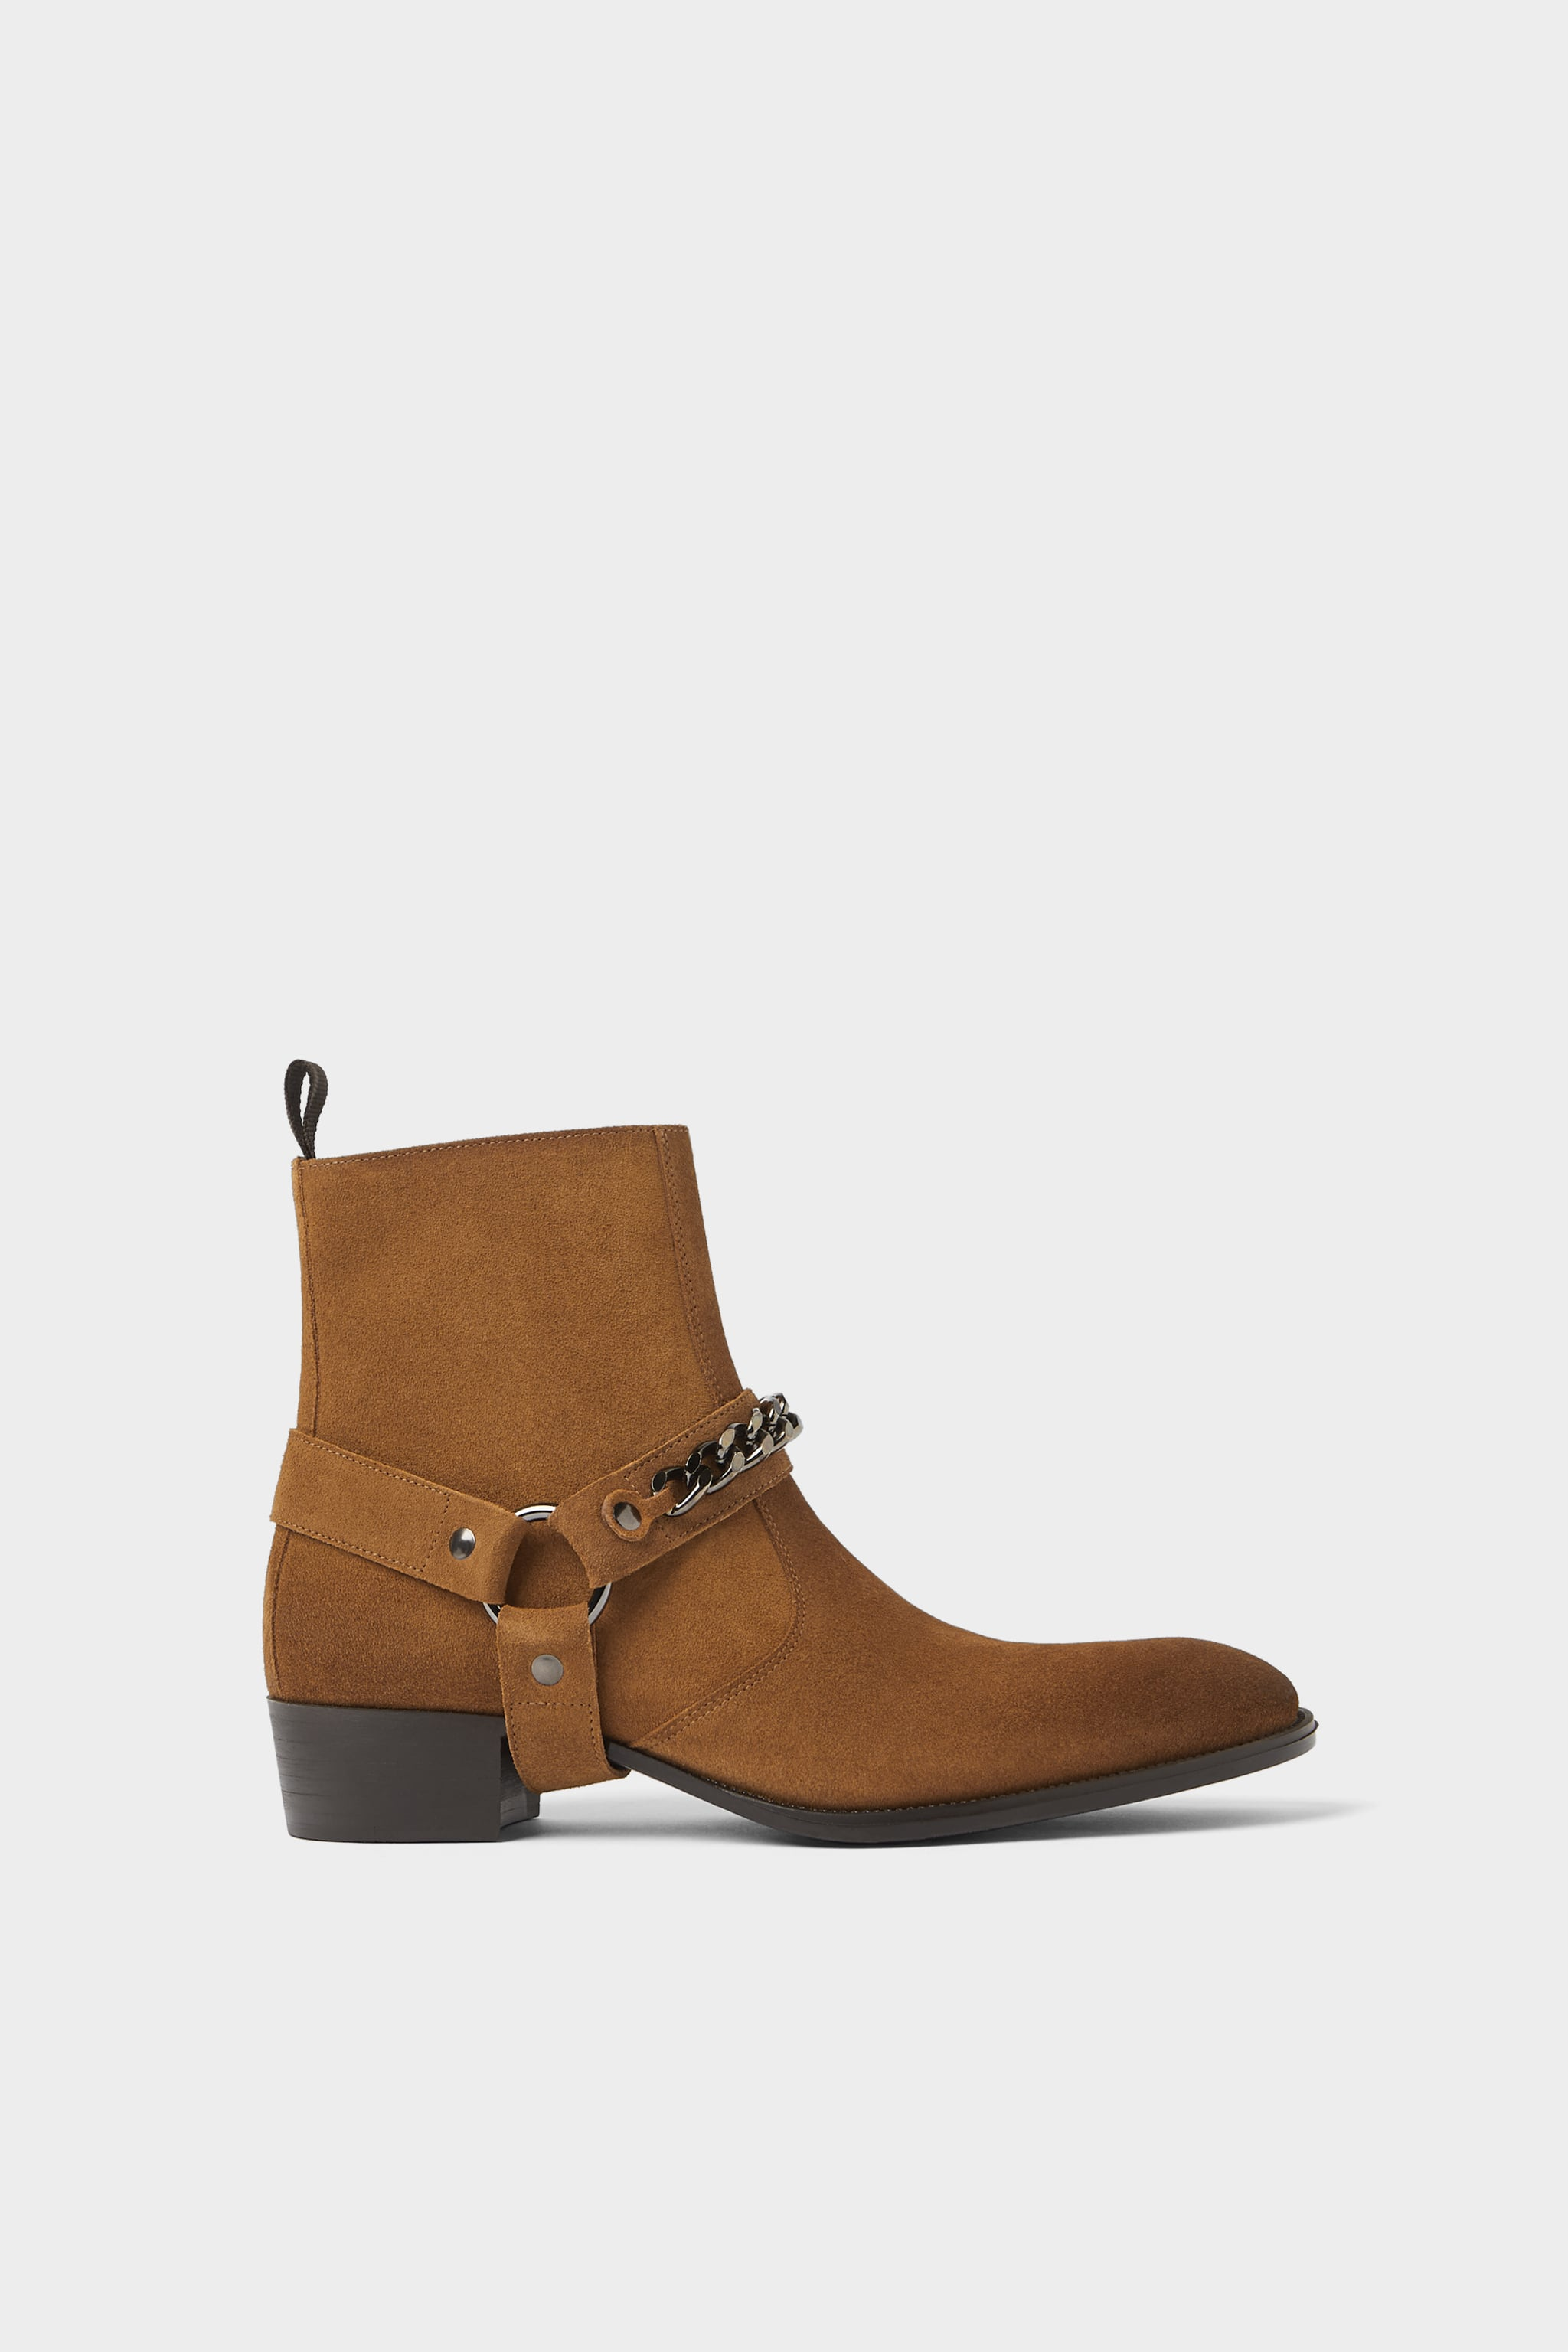 29355c0f860 Zara LEATHER BOOTS WITH CHAIN